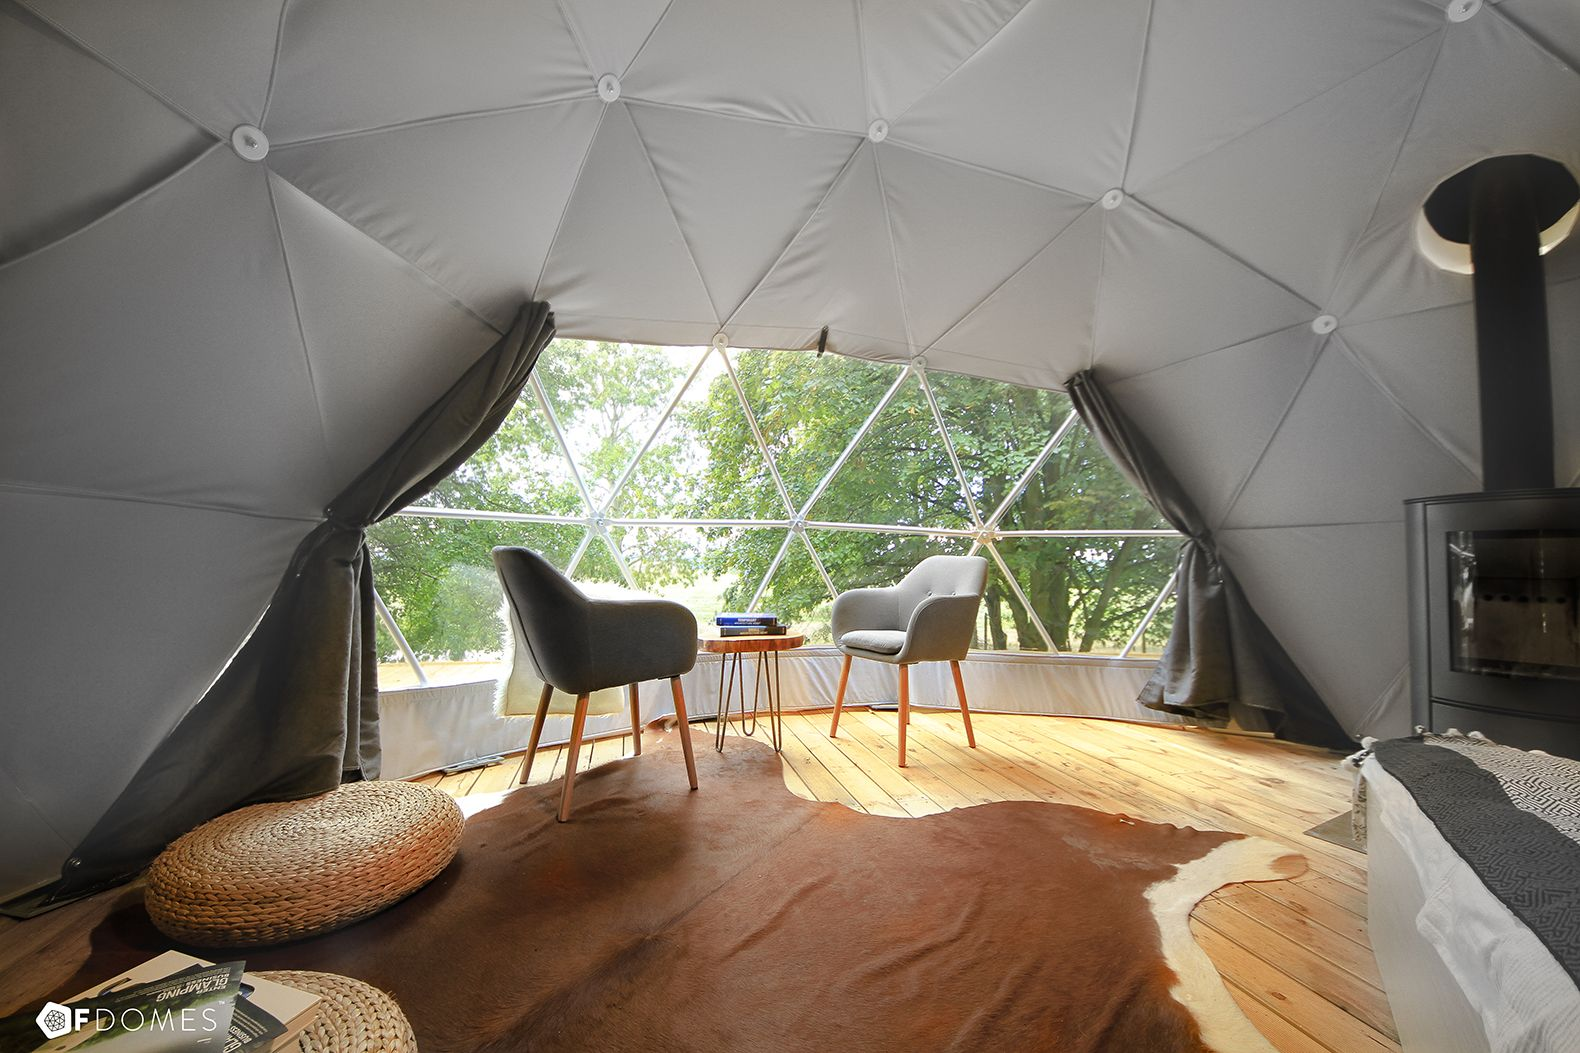 Create Your Own Backyard Geodesic Dome With These Super Affordable